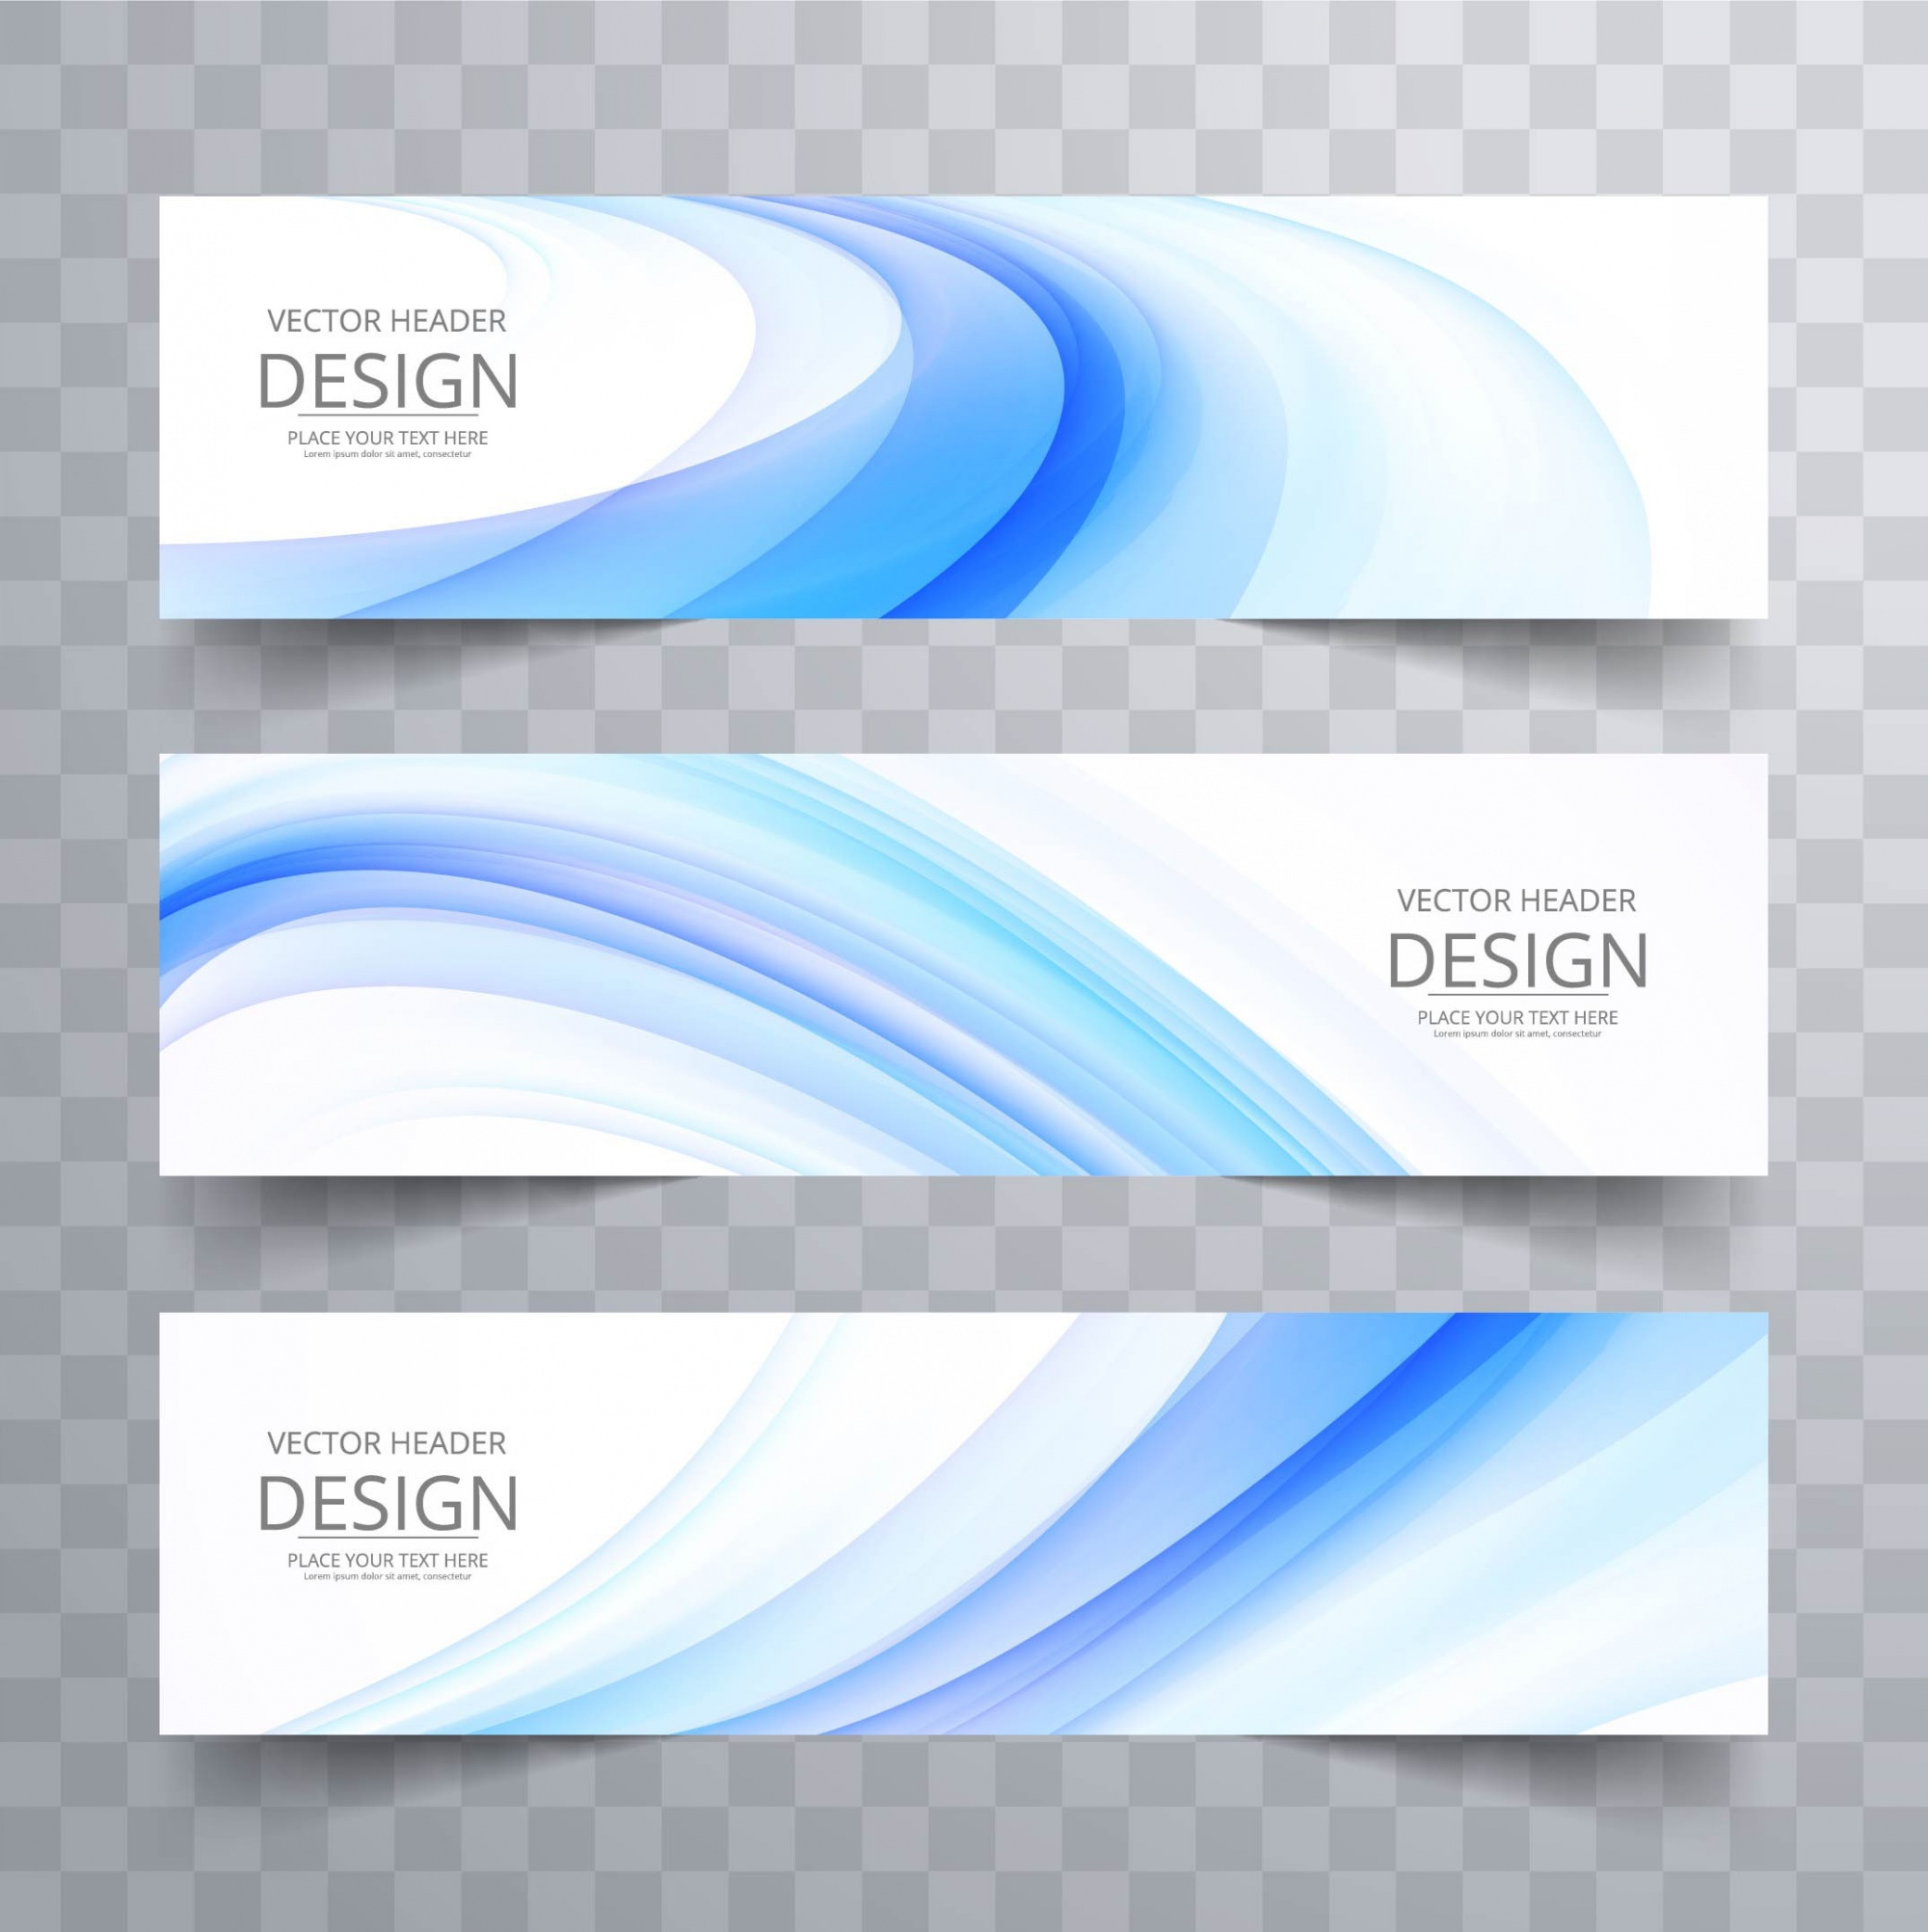 Two white banners with blue dynamic shapes